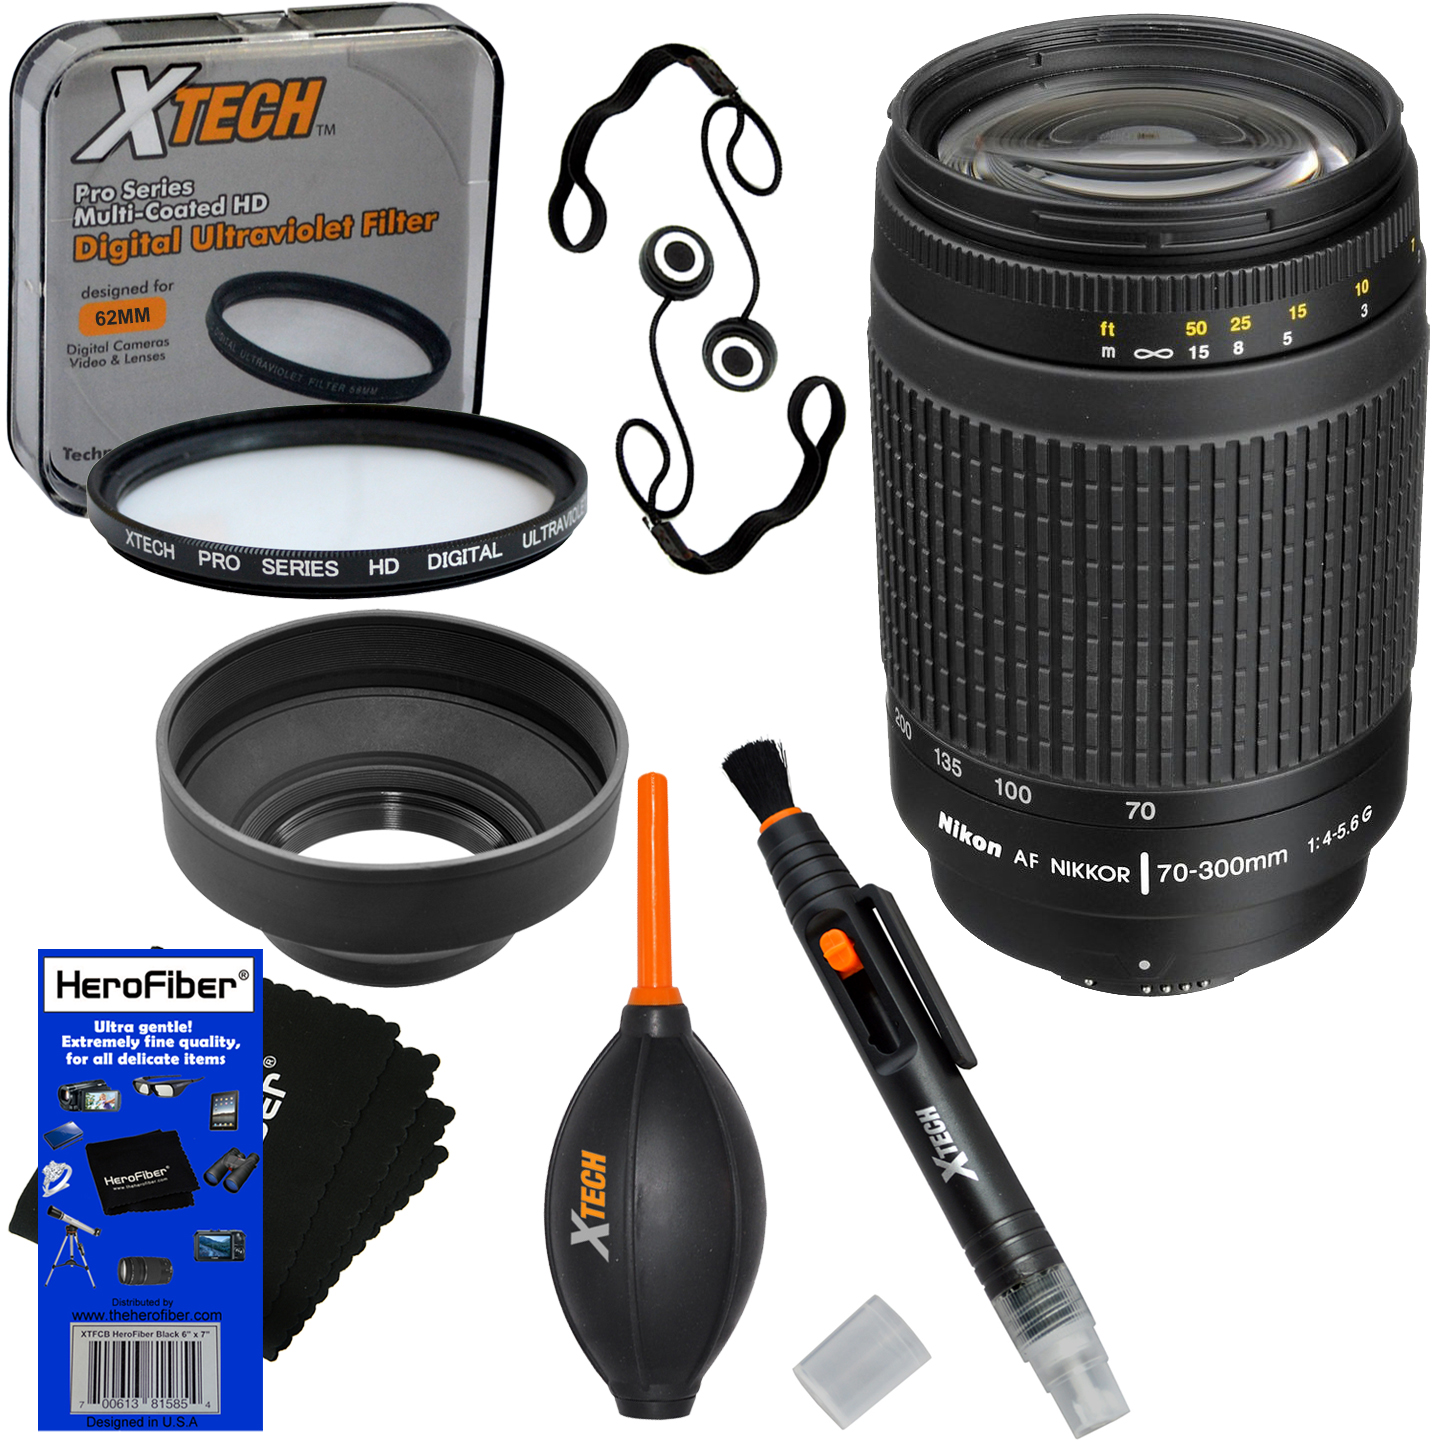 Nikon 70-300mm f/4-5.6G Telephoto Zoom Lens with Auto Focus for Nikon Digital SLR Cameras + 7pc Bundle Accessory Kit w/ HeroFiber Ultra Gentle Cleaning Cloth